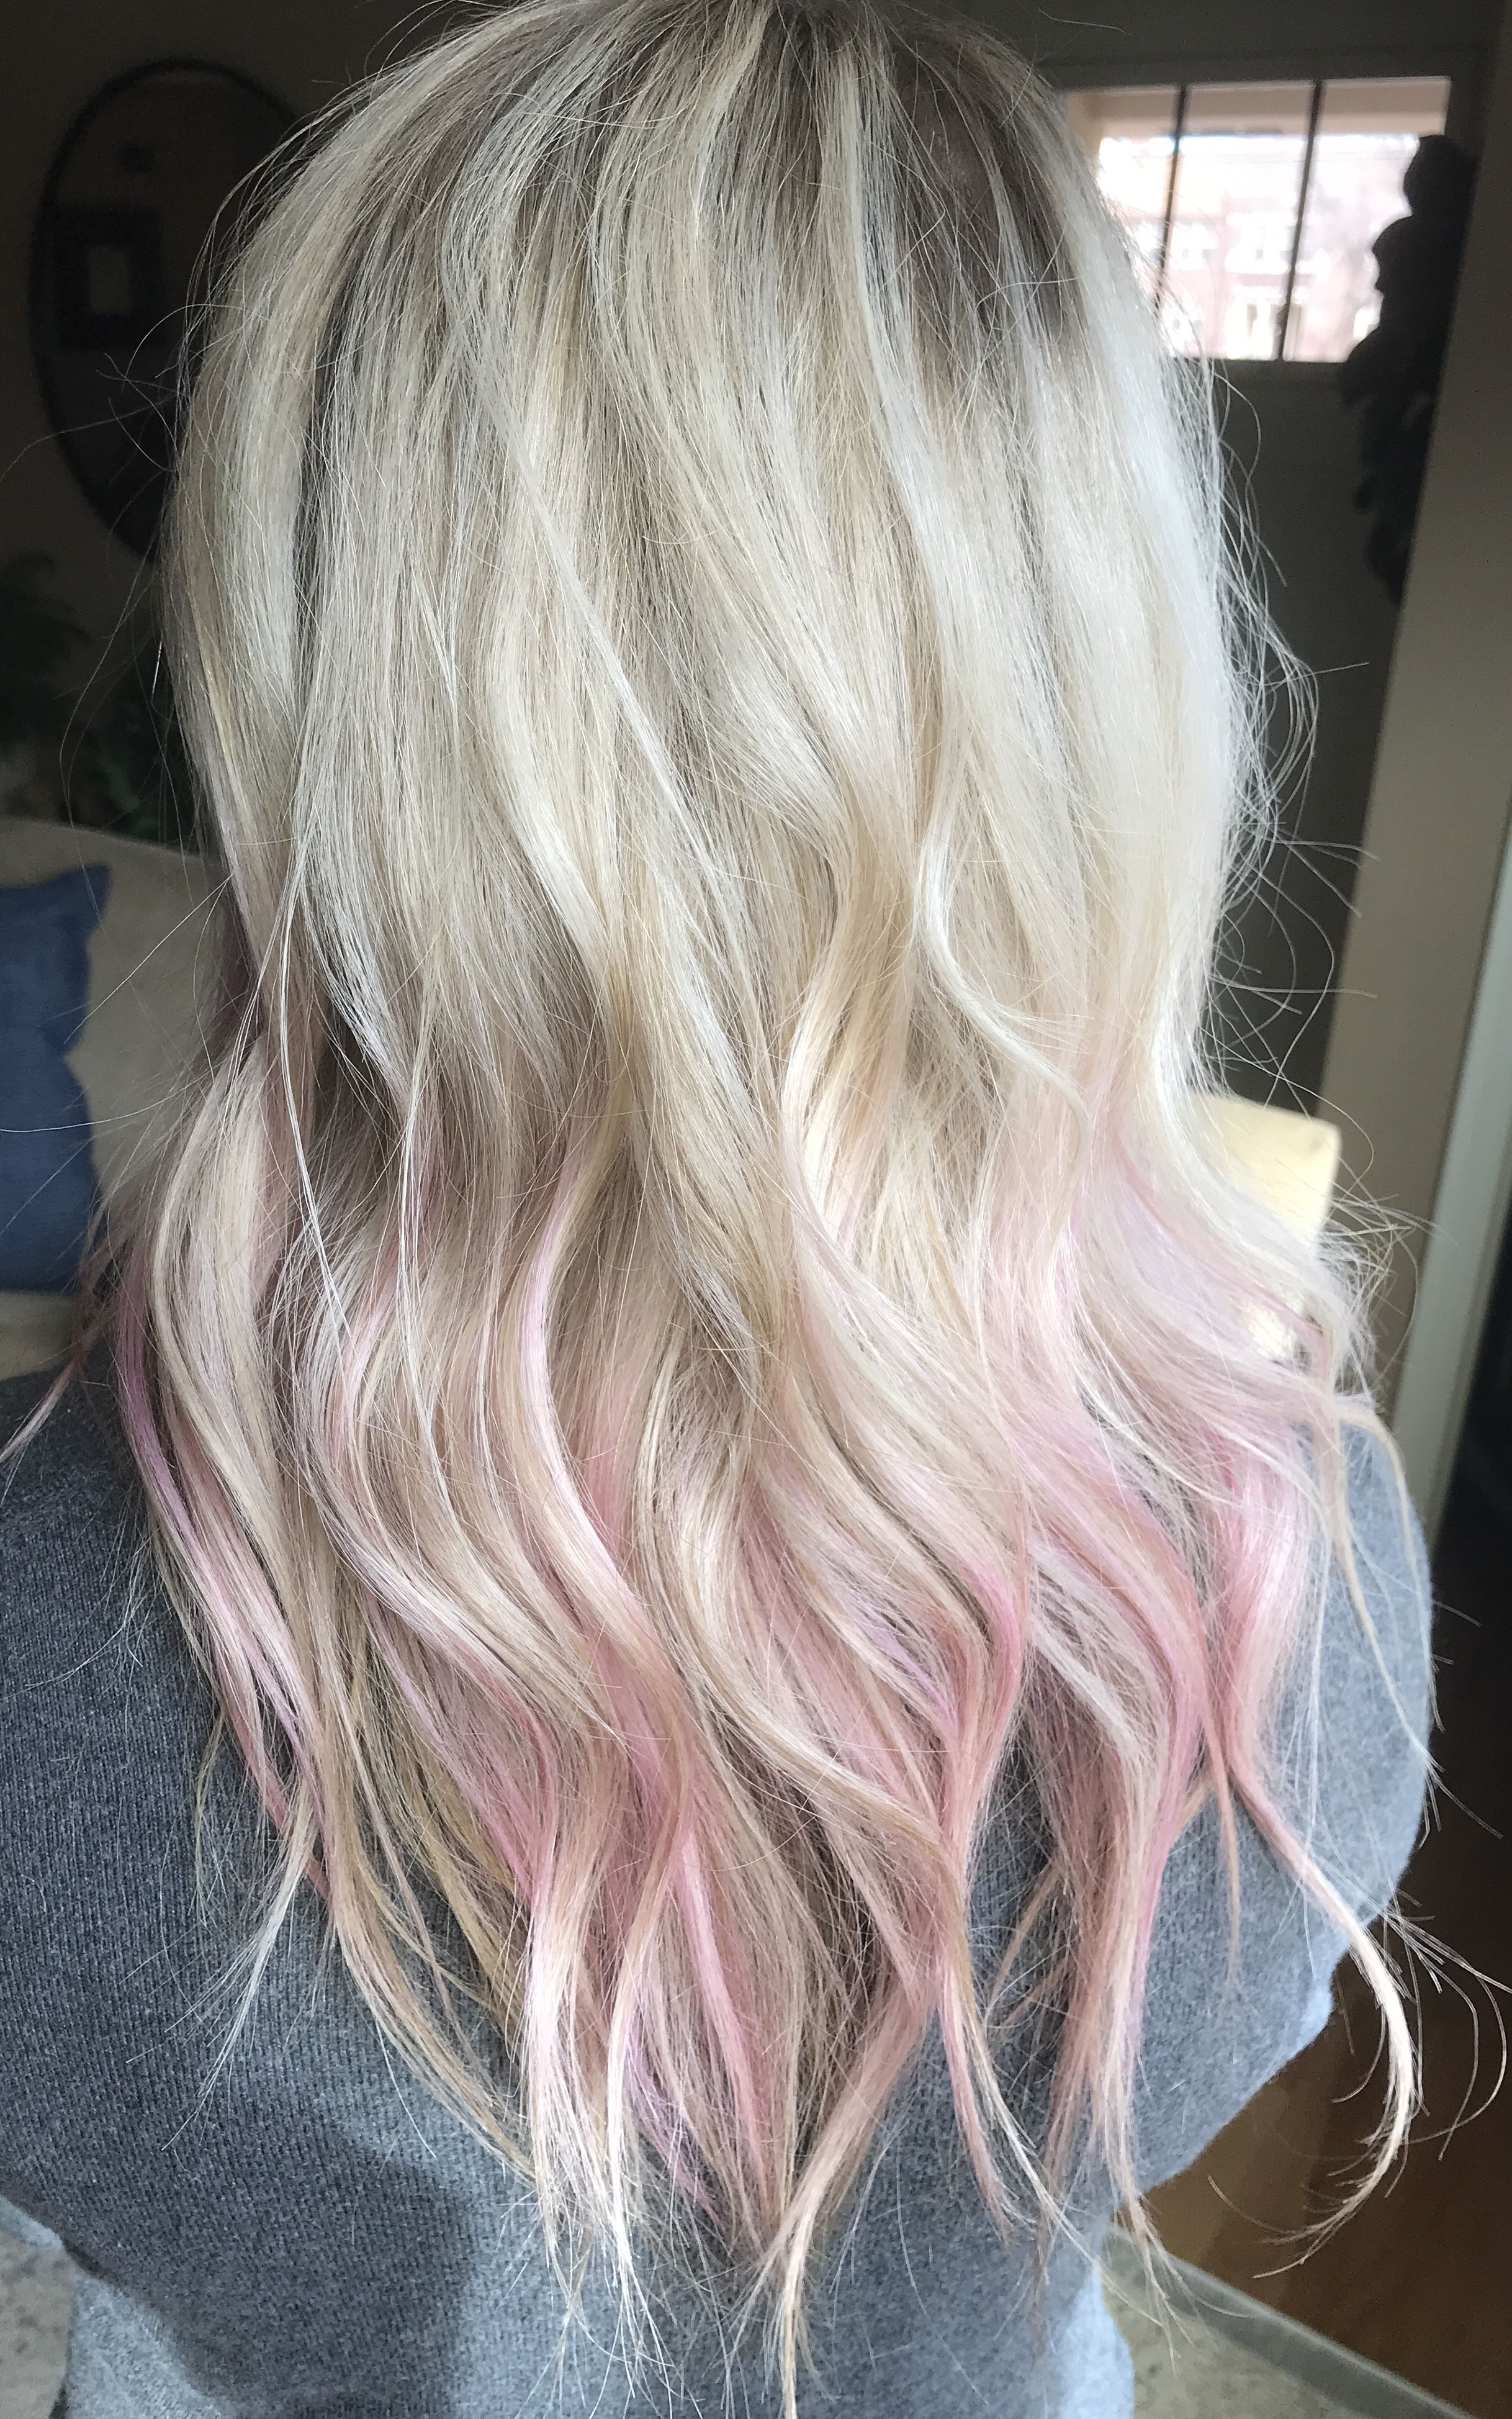 Pin By Kylie Atkinson On Hair Pink Blonde Hair